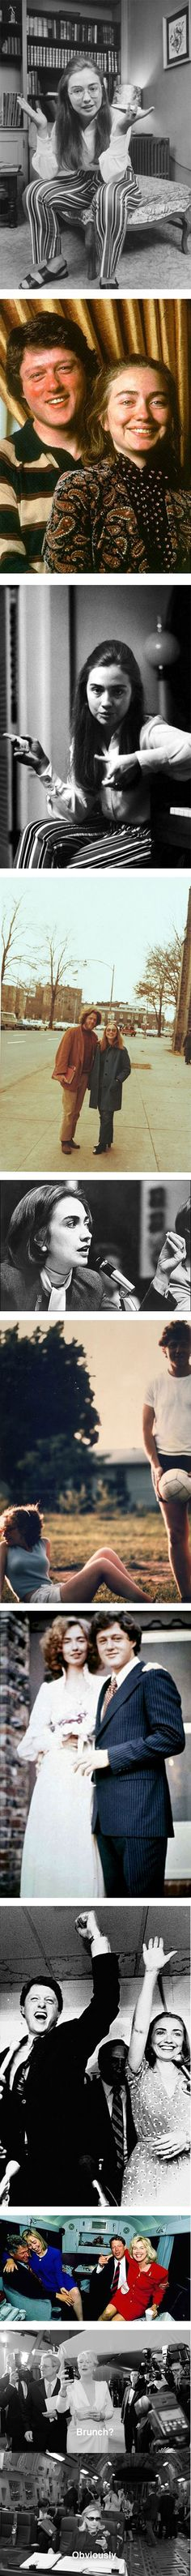 Hilary Clinton's style evolution from 1970-2015 via Nuji.com